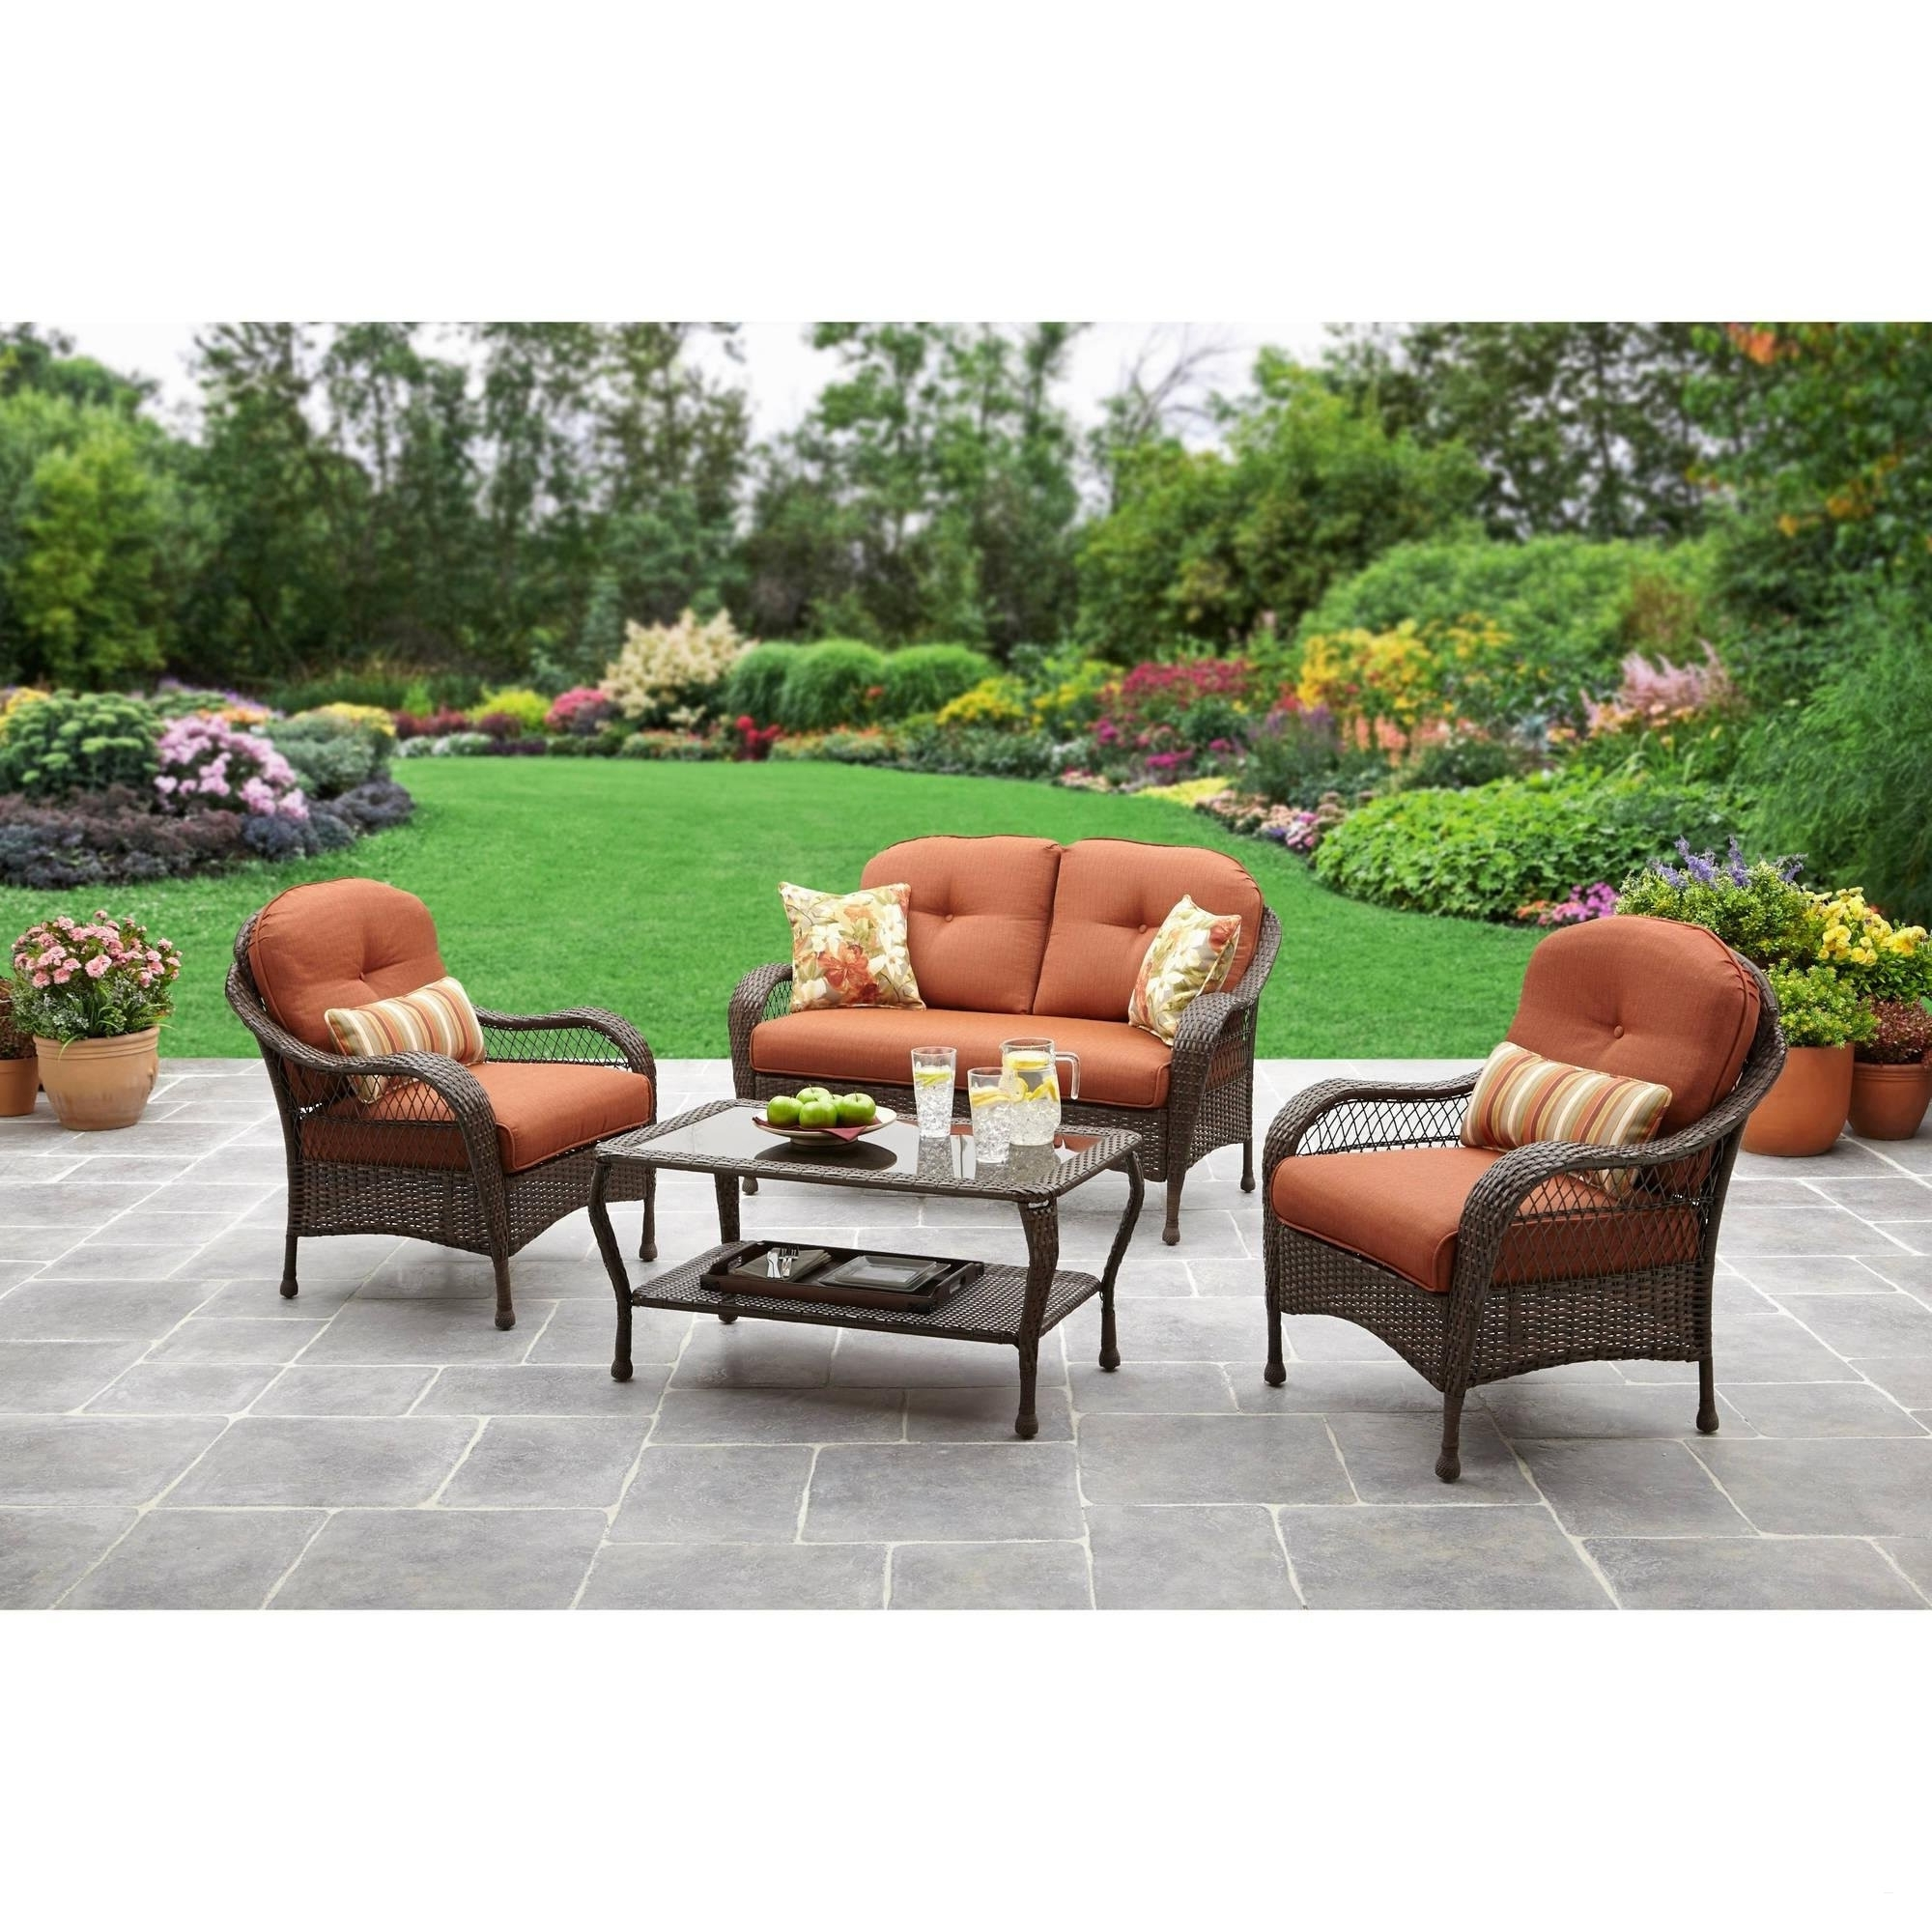 Well Liked Patio Furniture Conversation Sets At Home Depot In Home Depot Patio Furniture Amazon Outdoor Furniture Patio Furniture (View 8 of 20)